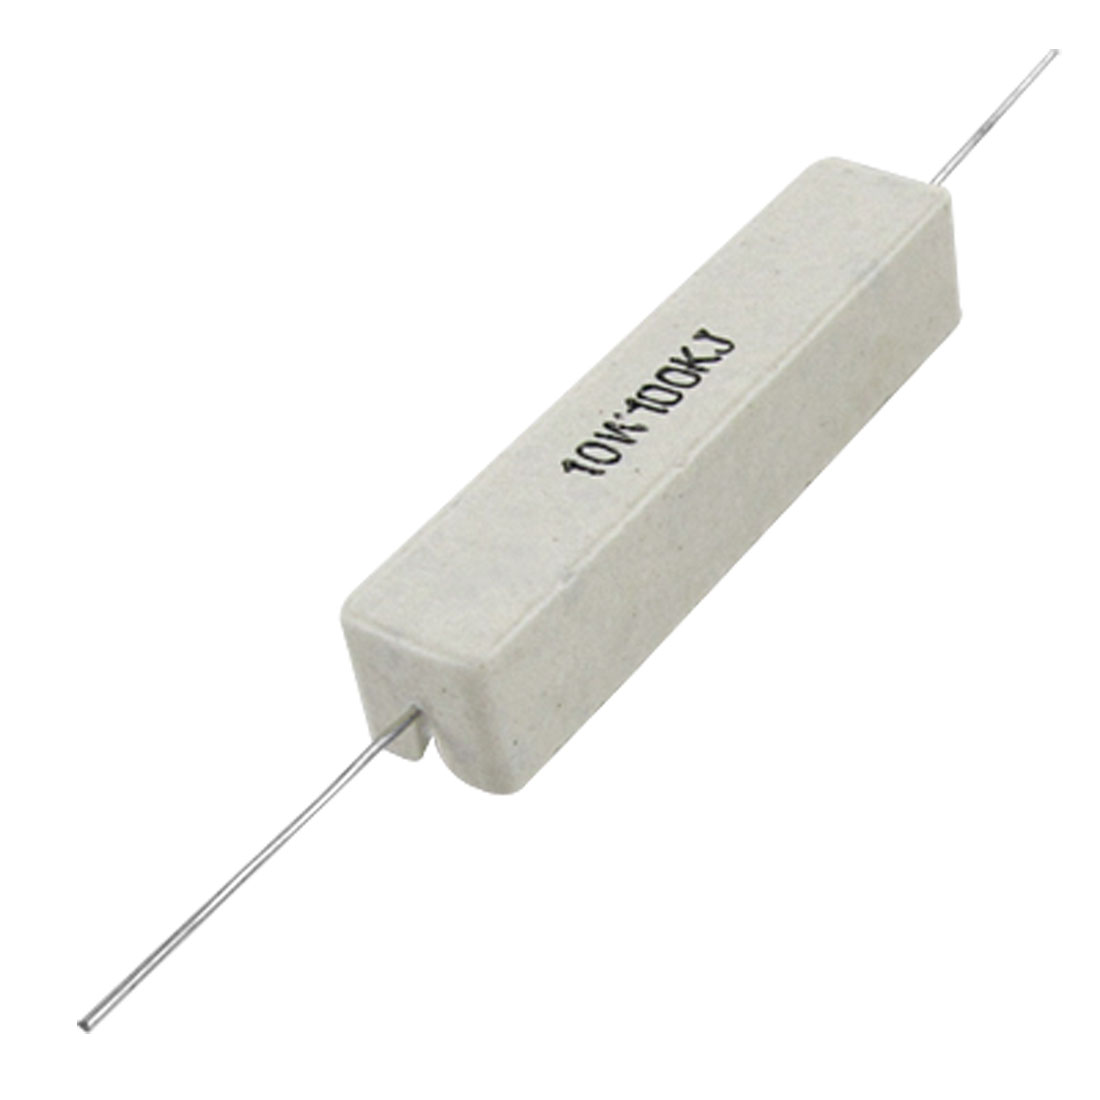 10 Pcs 100K Ohm 5% Fixed Cement Power Resistors 10W Watt